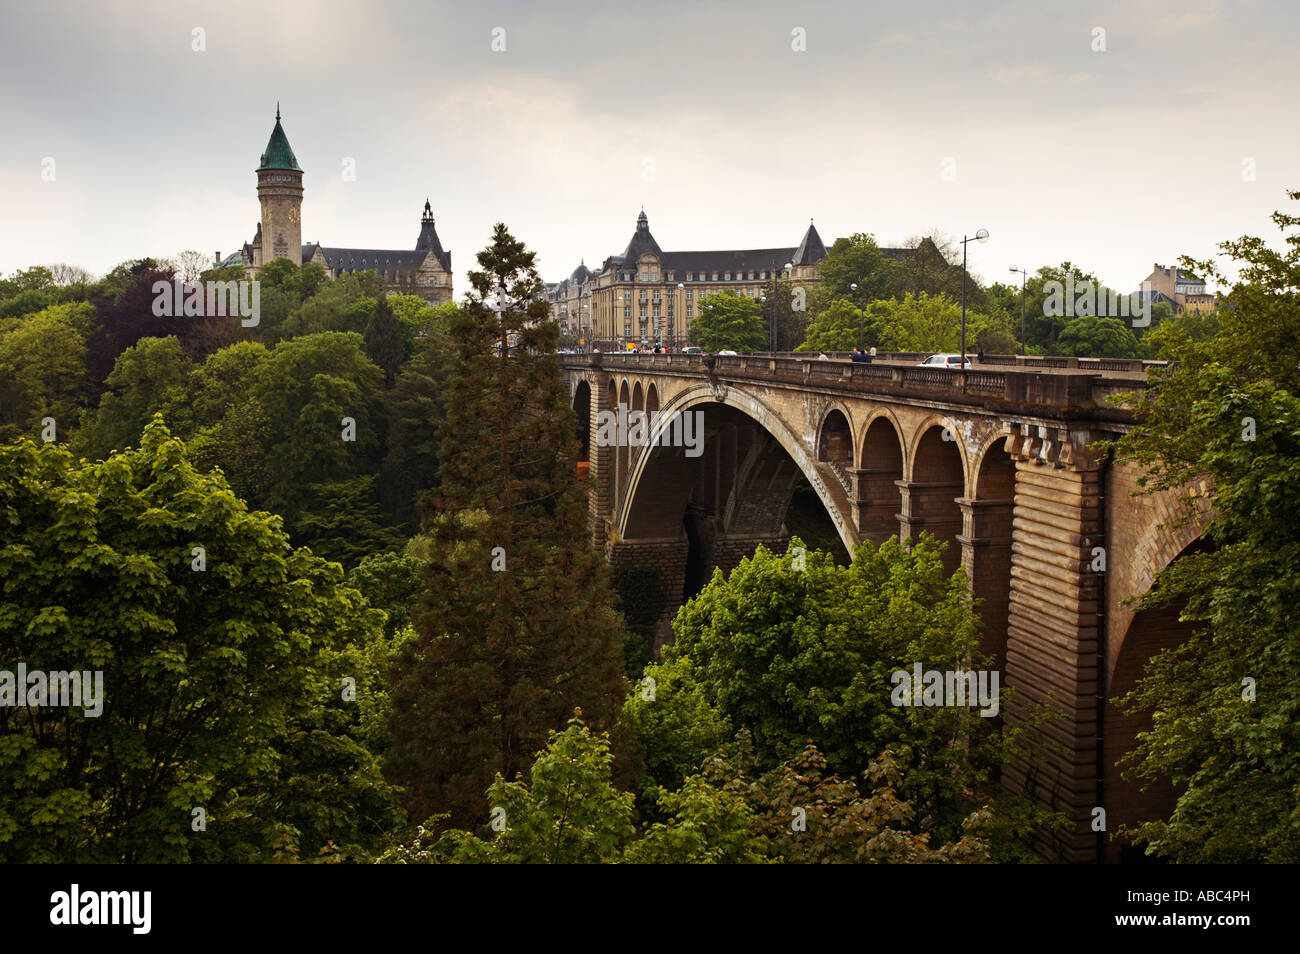 Adolphe bridge and BCEE building across the Petrusse valley in Luxembourg City - Stock Image